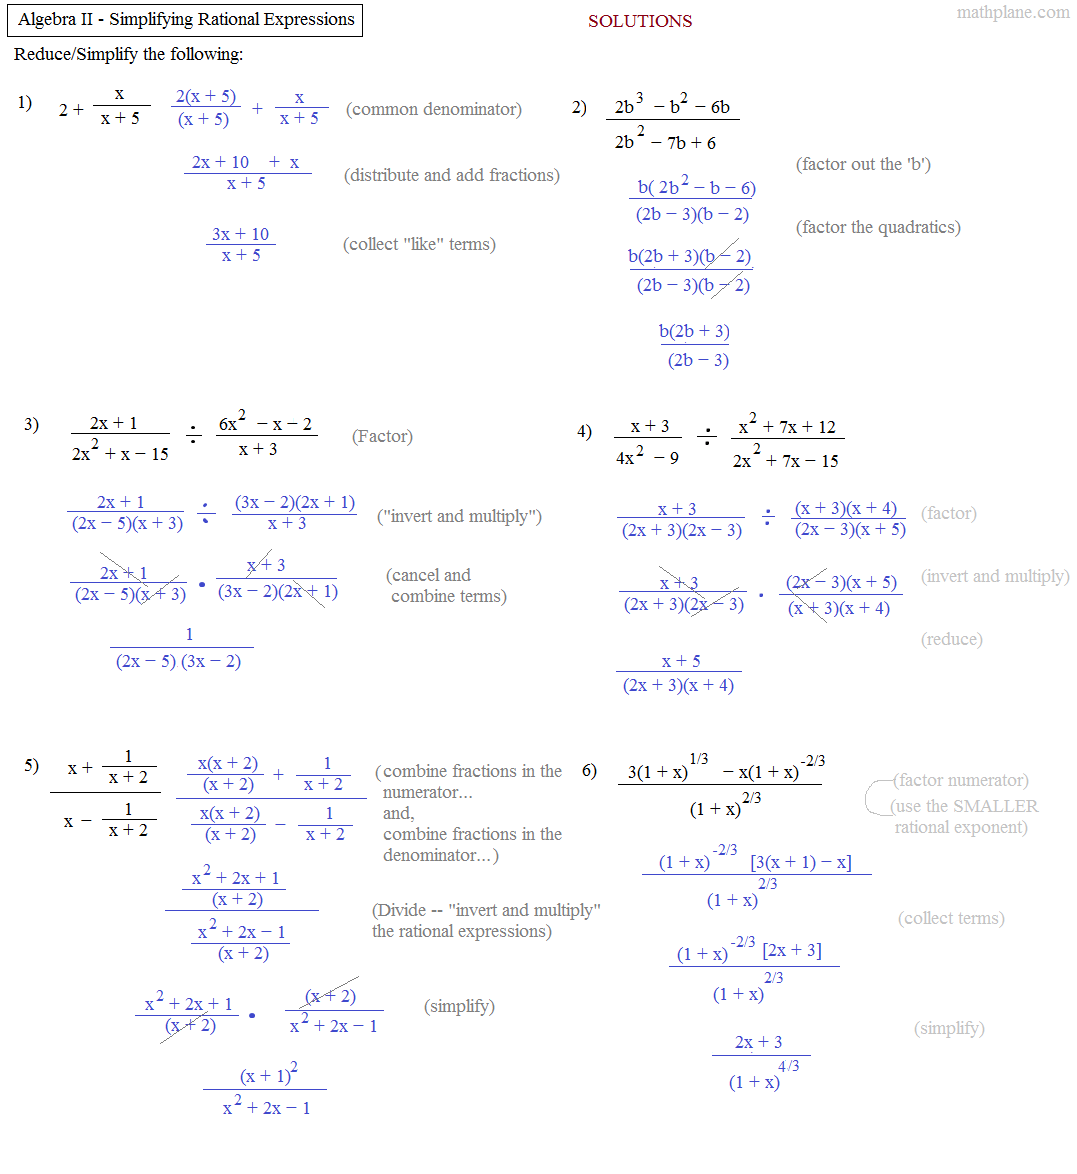 35 Algebra 2 Factoring Review Worksheet Answers